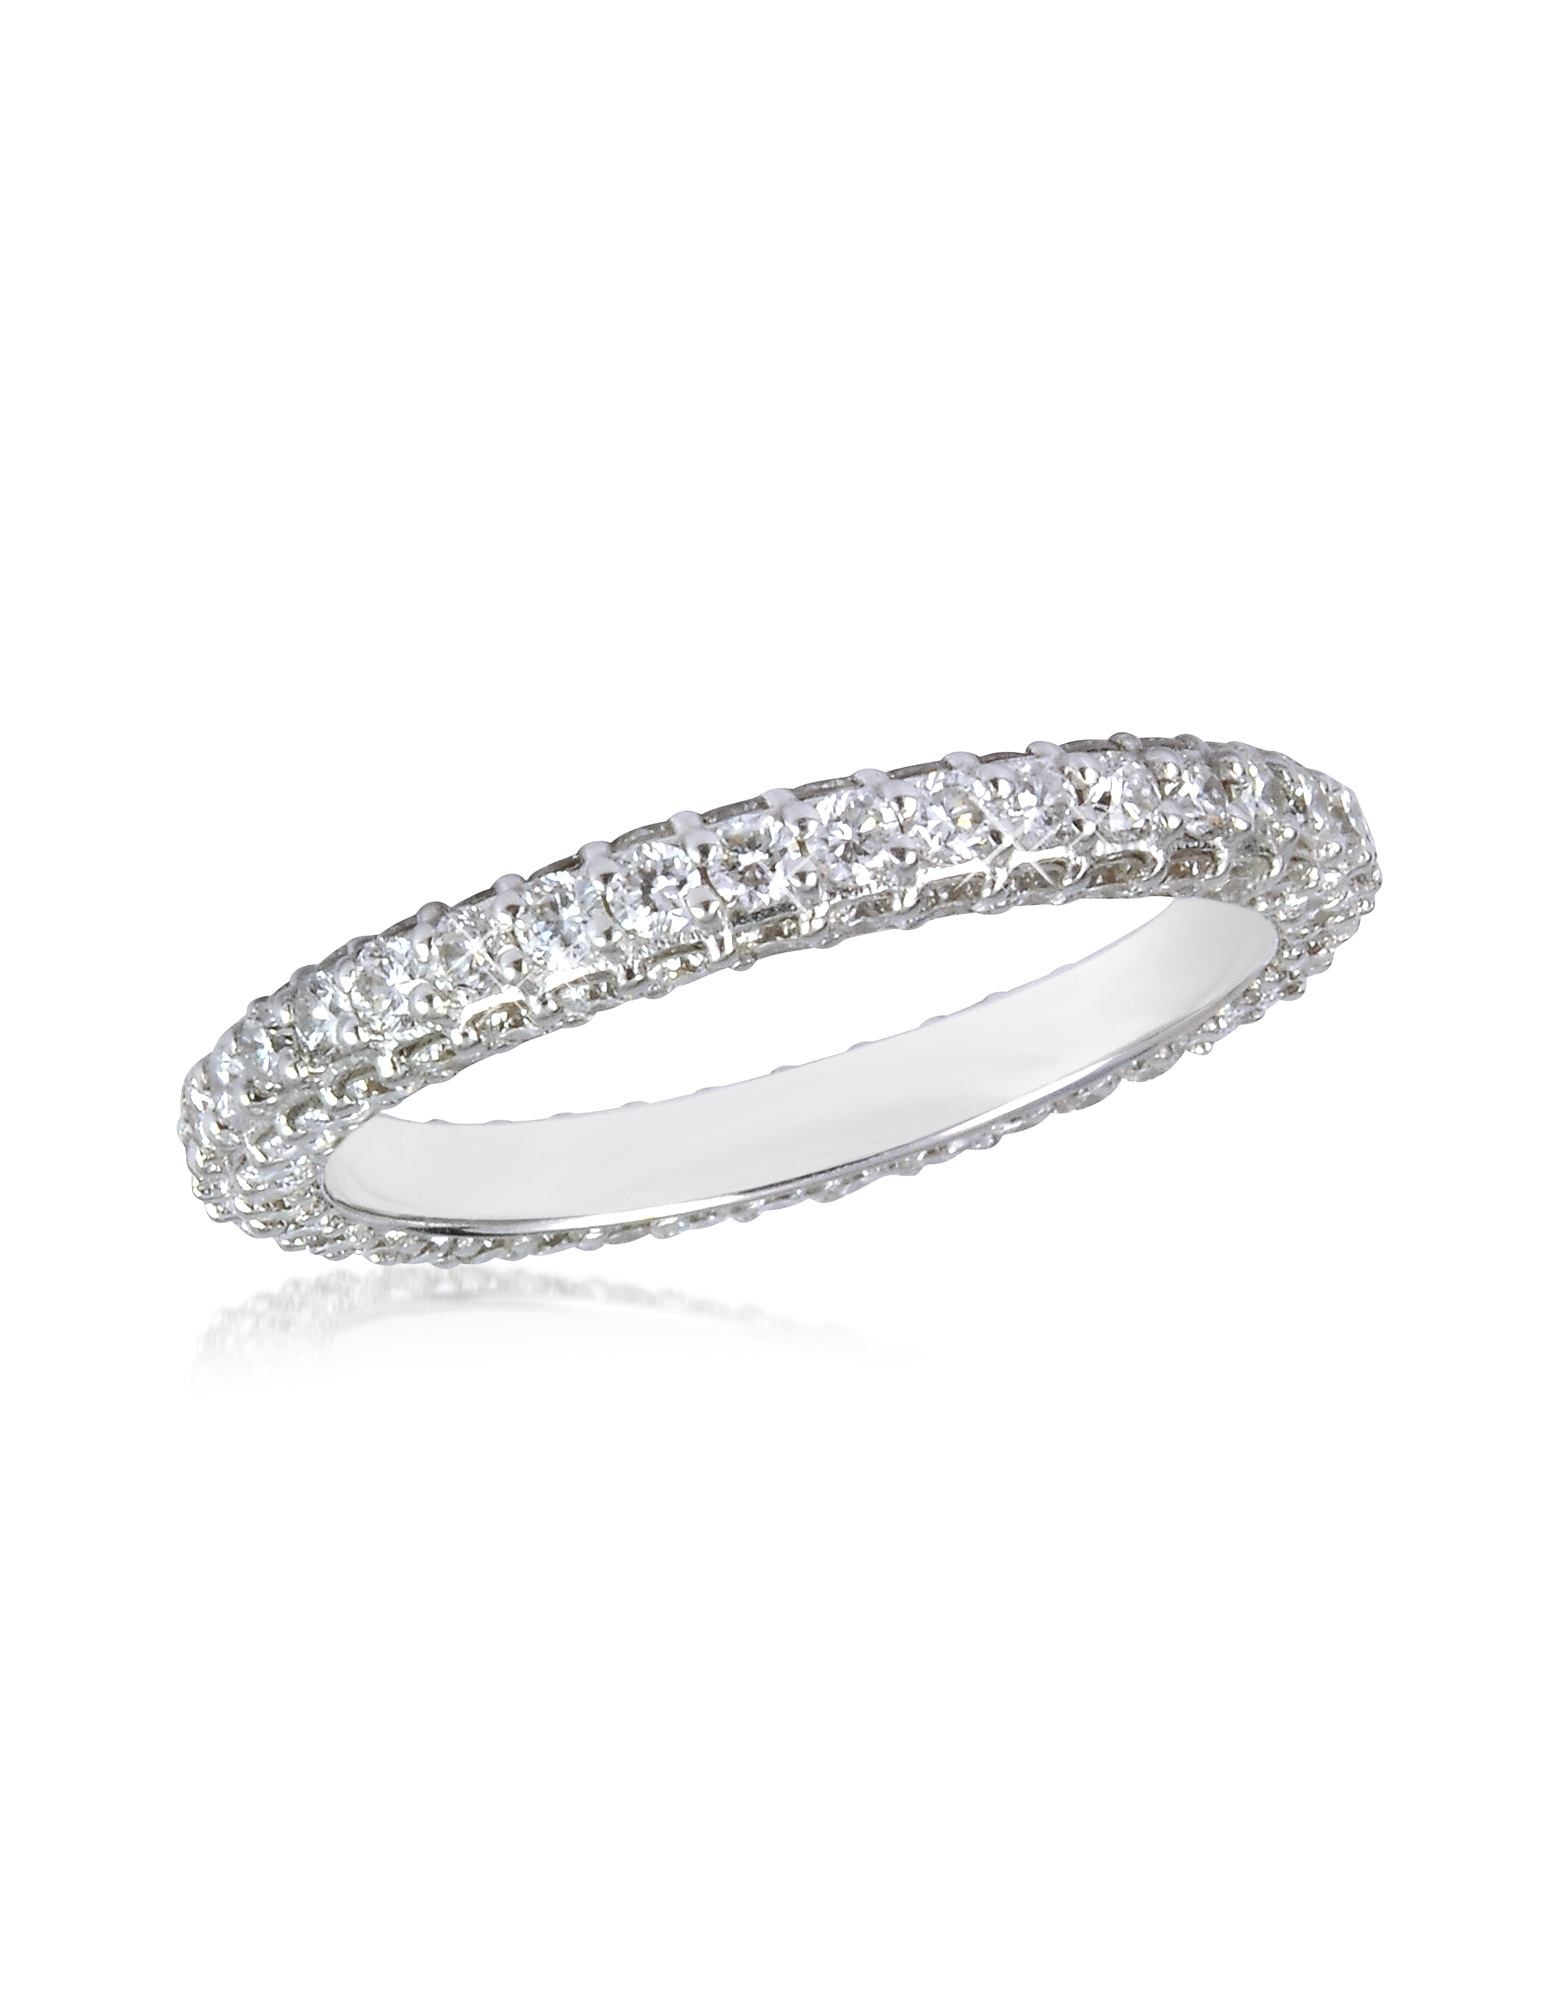 Forzieri Rings, 1.59 ctw Diamond 18K White Gold Eternity Band